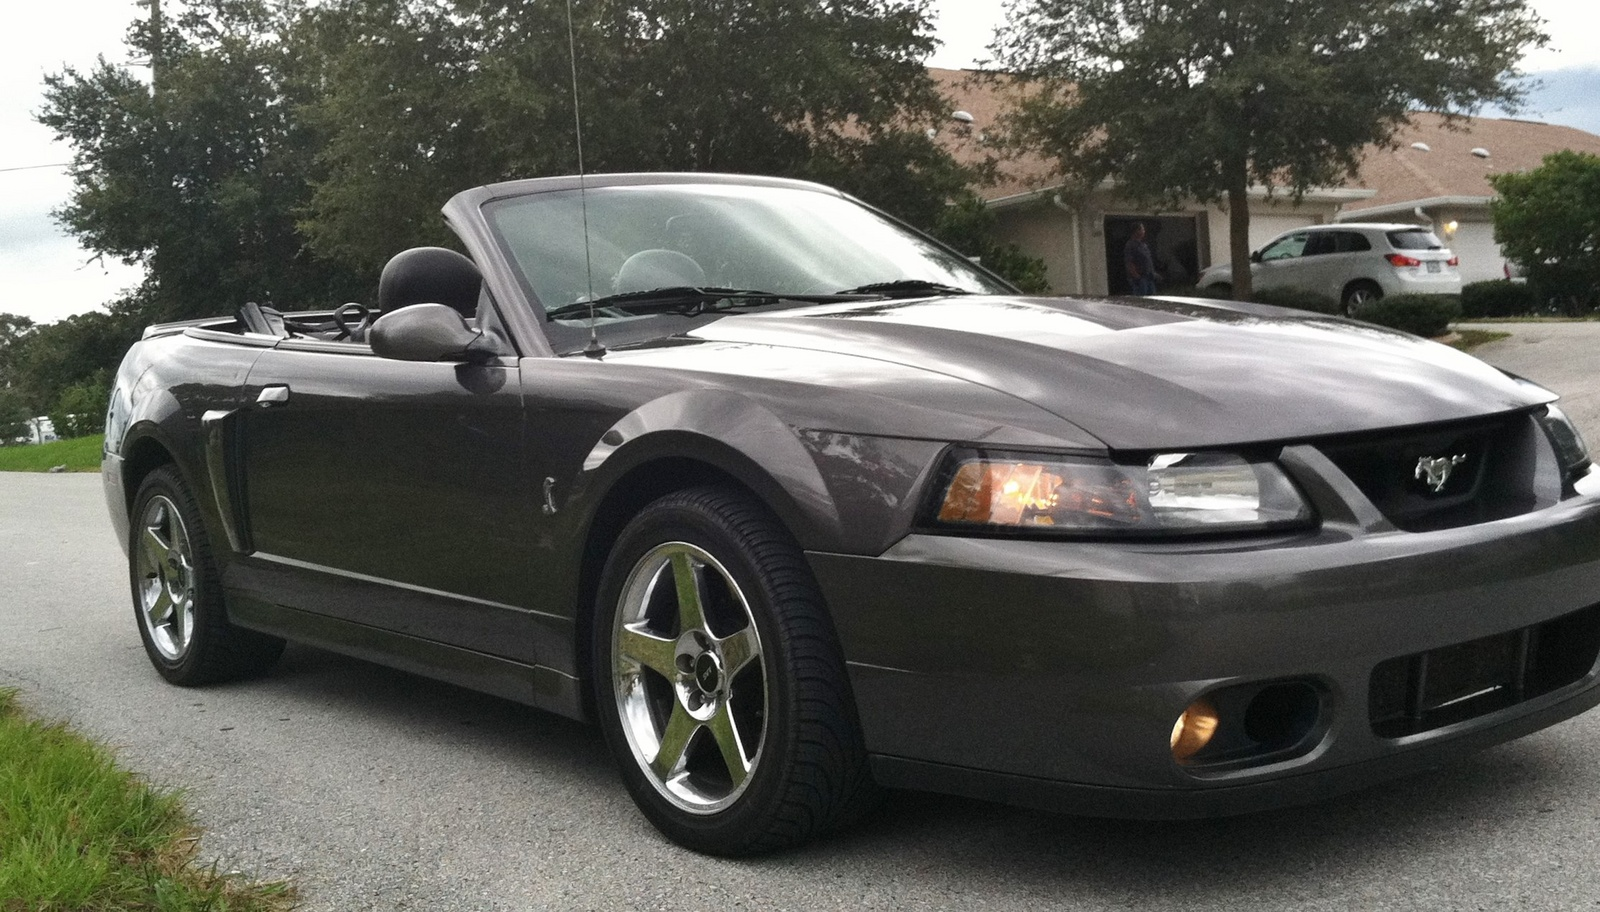 2003 ford mustang svt cobra user reviews cargurus autos post. Black Bedroom Furniture Sets. Home Design Ideas